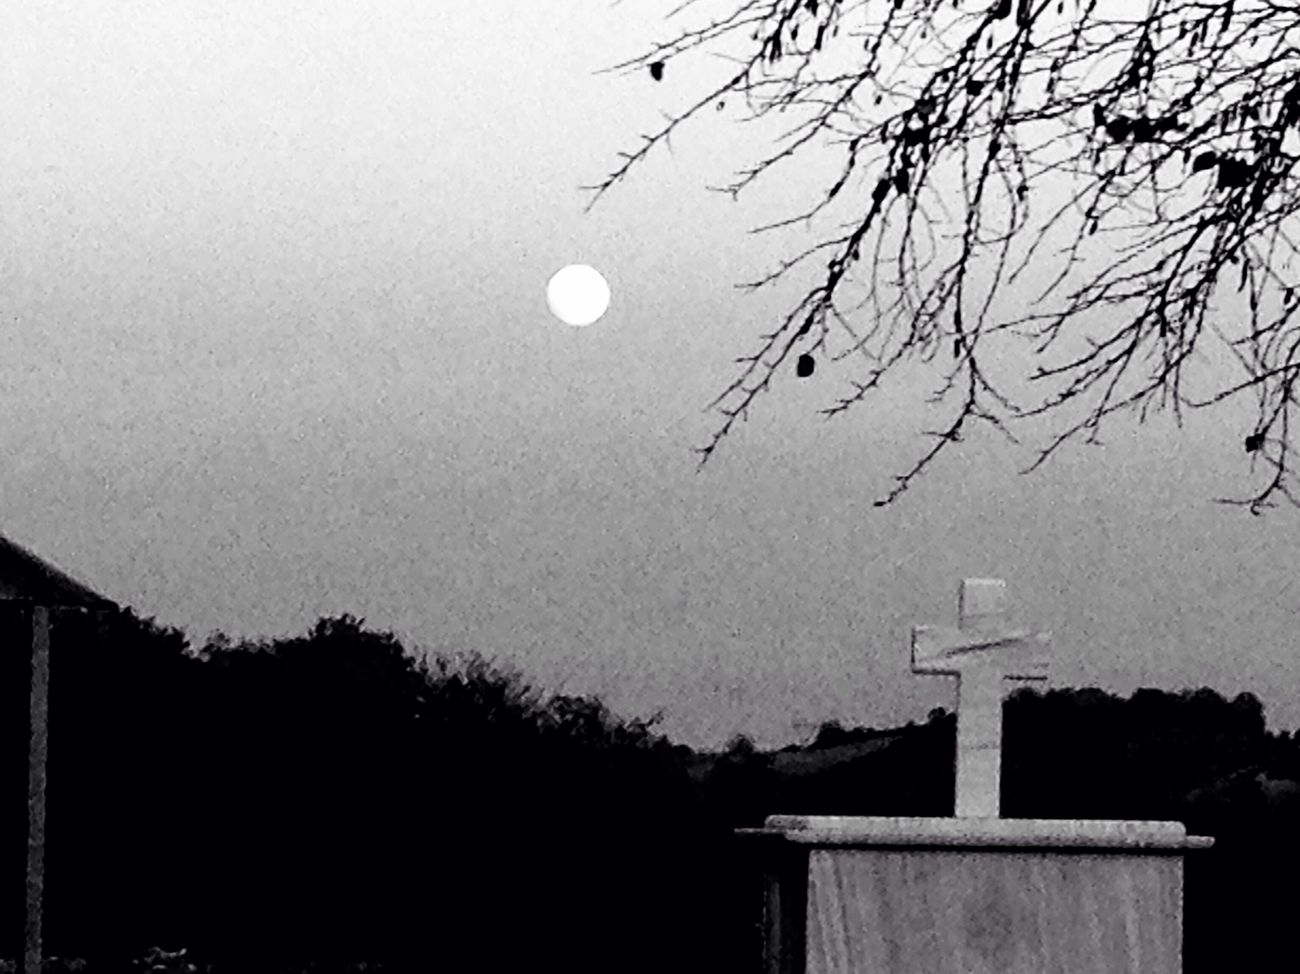 Graveyard Beauty Blackandwhite Black And White Blackandwhite Photography Black&white Moon Moonlight Mood Moon Shots Cross Moon Eclipse Greece Trees Sadness Fear Metal Gothic Darkness And Light Dark Dark Art